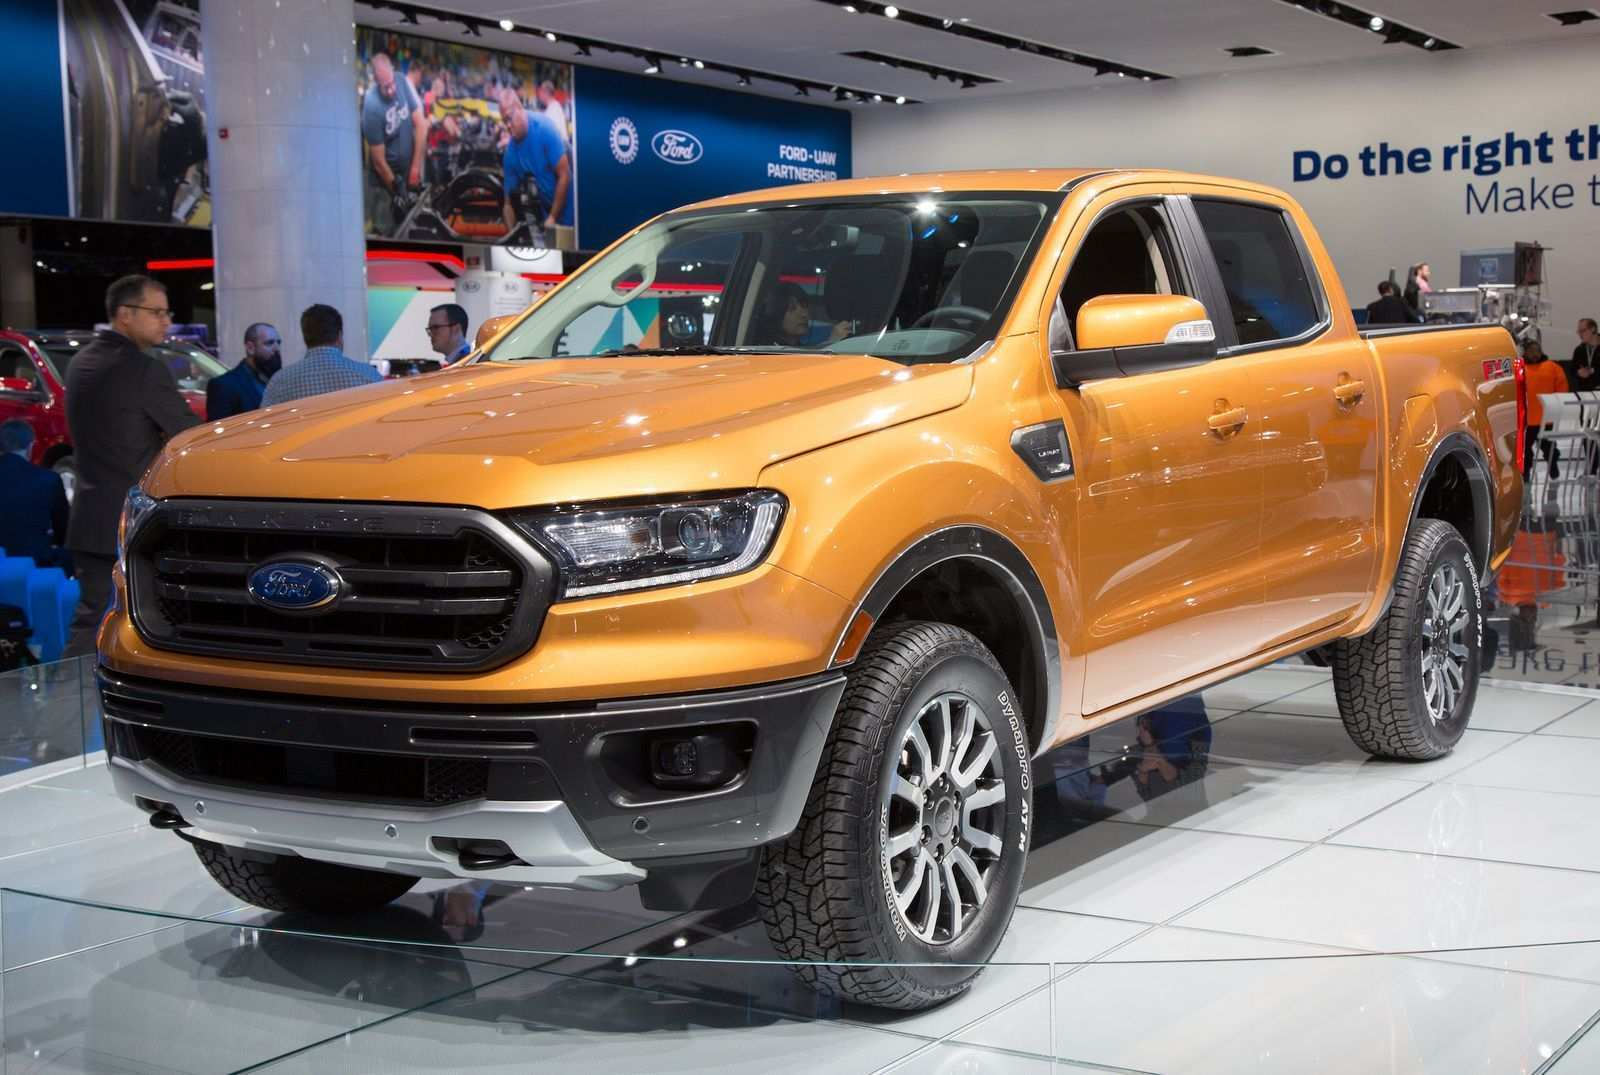 90 New 2019 Ford Ranger Vs Bmw Canyon Spy Shoot by 2019 Ford Ranger Vs Bmw Canyon